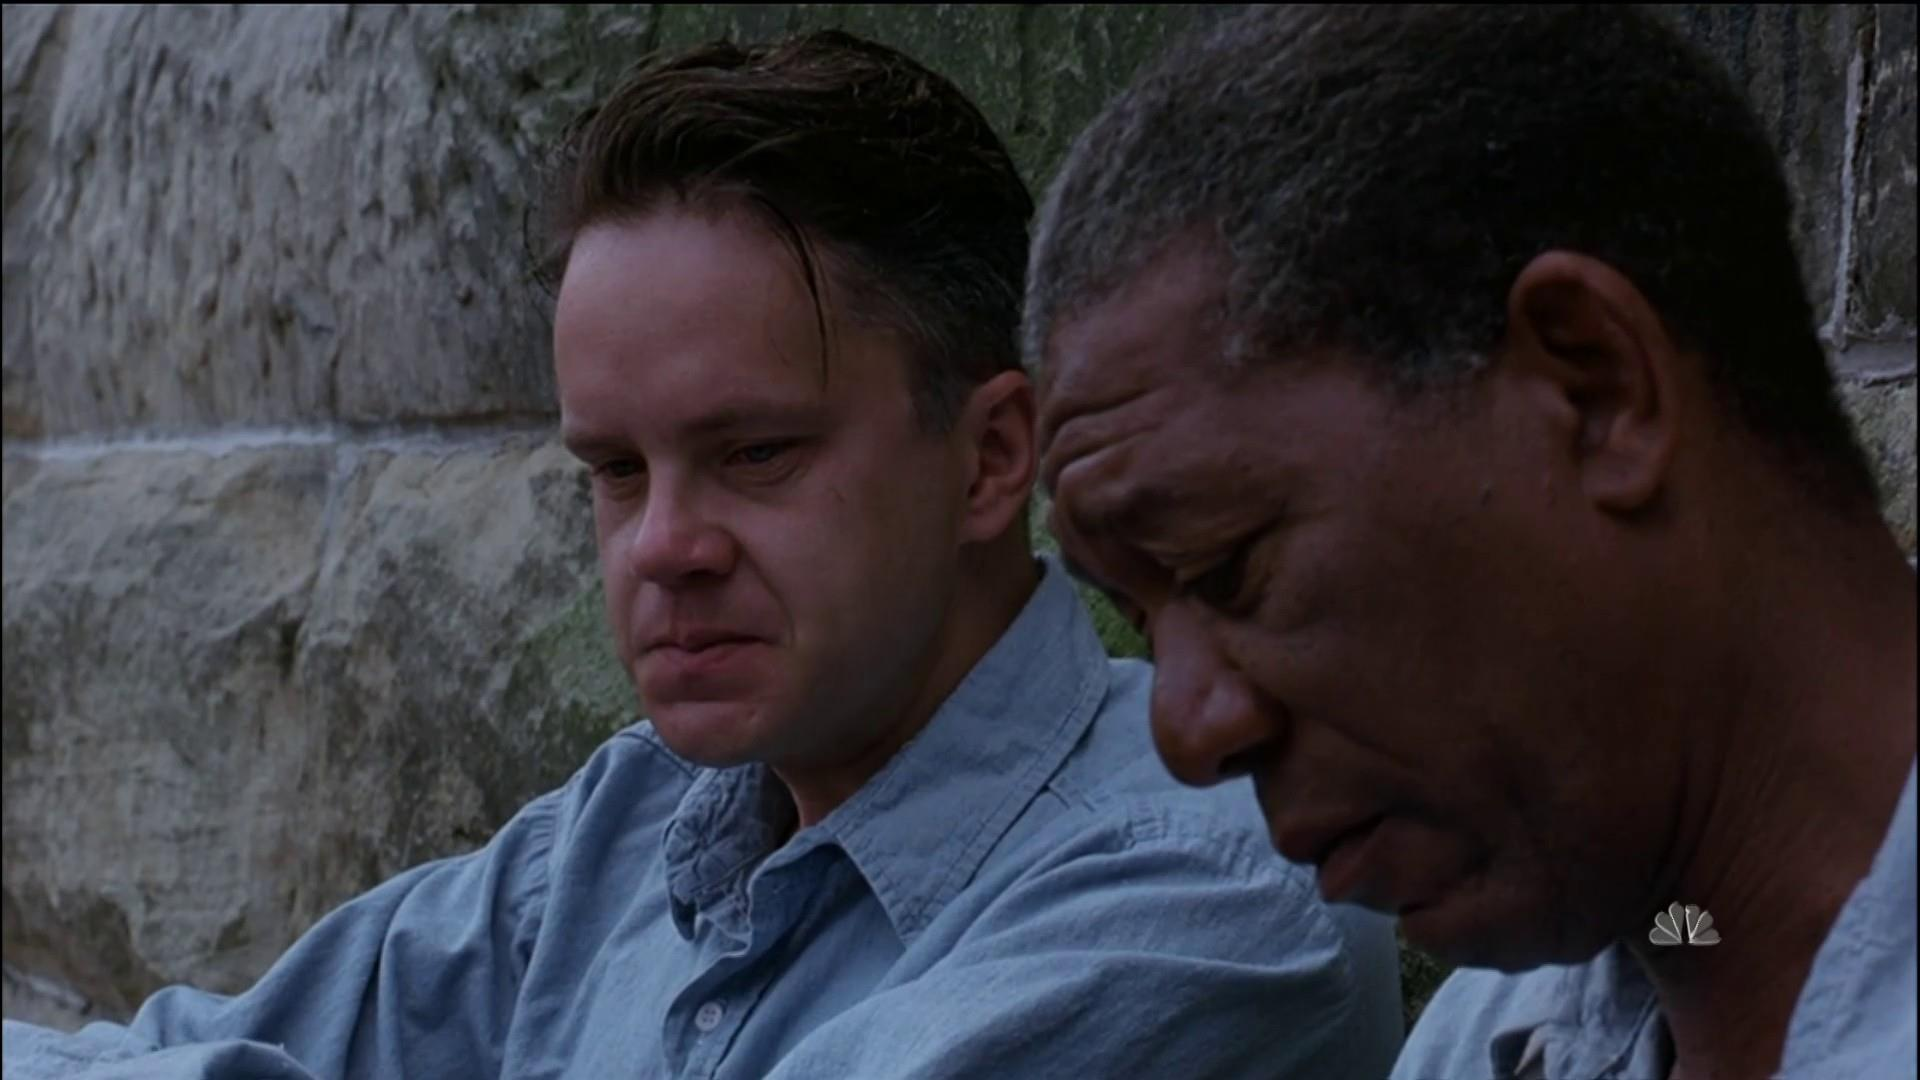 'The Shawshank Redemption' celebrated on 25th anniversary